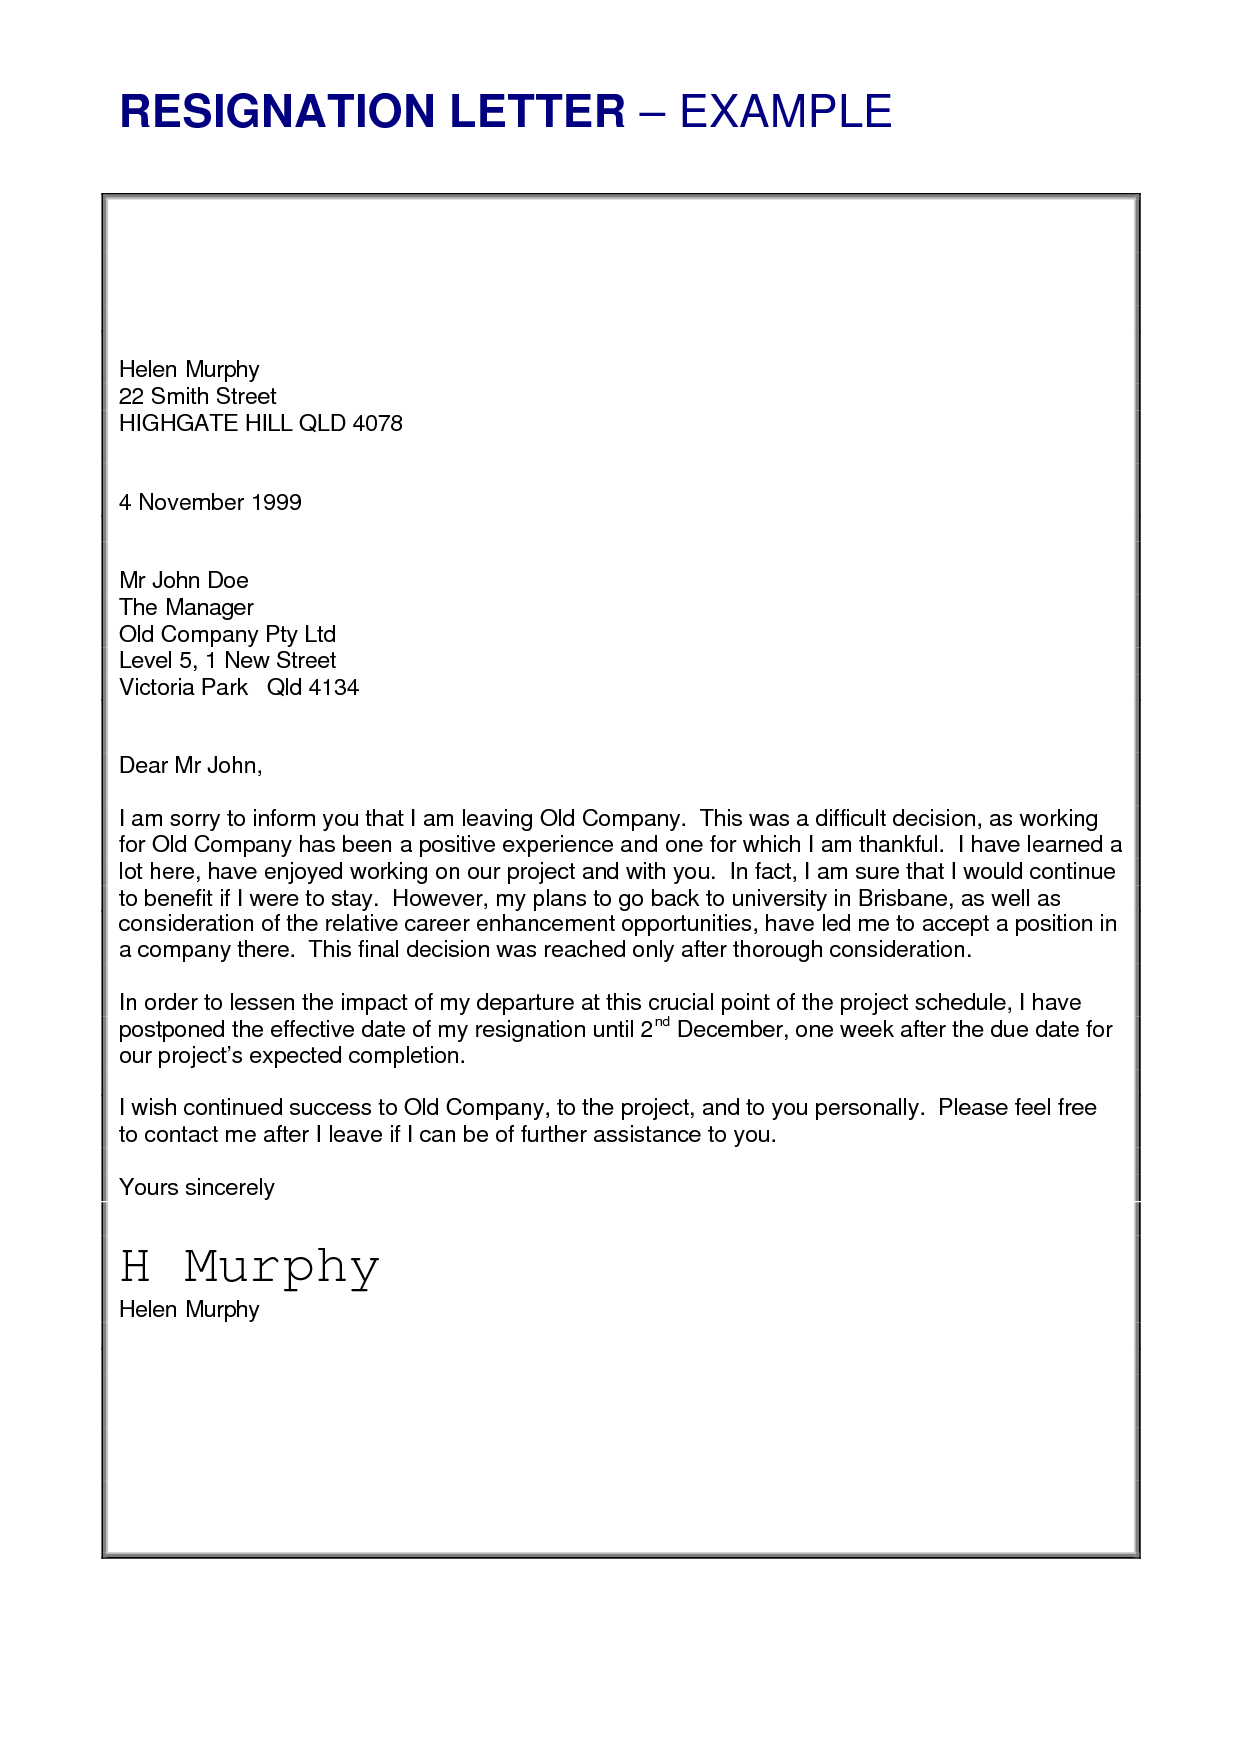 Microsoft Office Resignation Letter Template - Job Resignation Letter Sample Loganun Blog